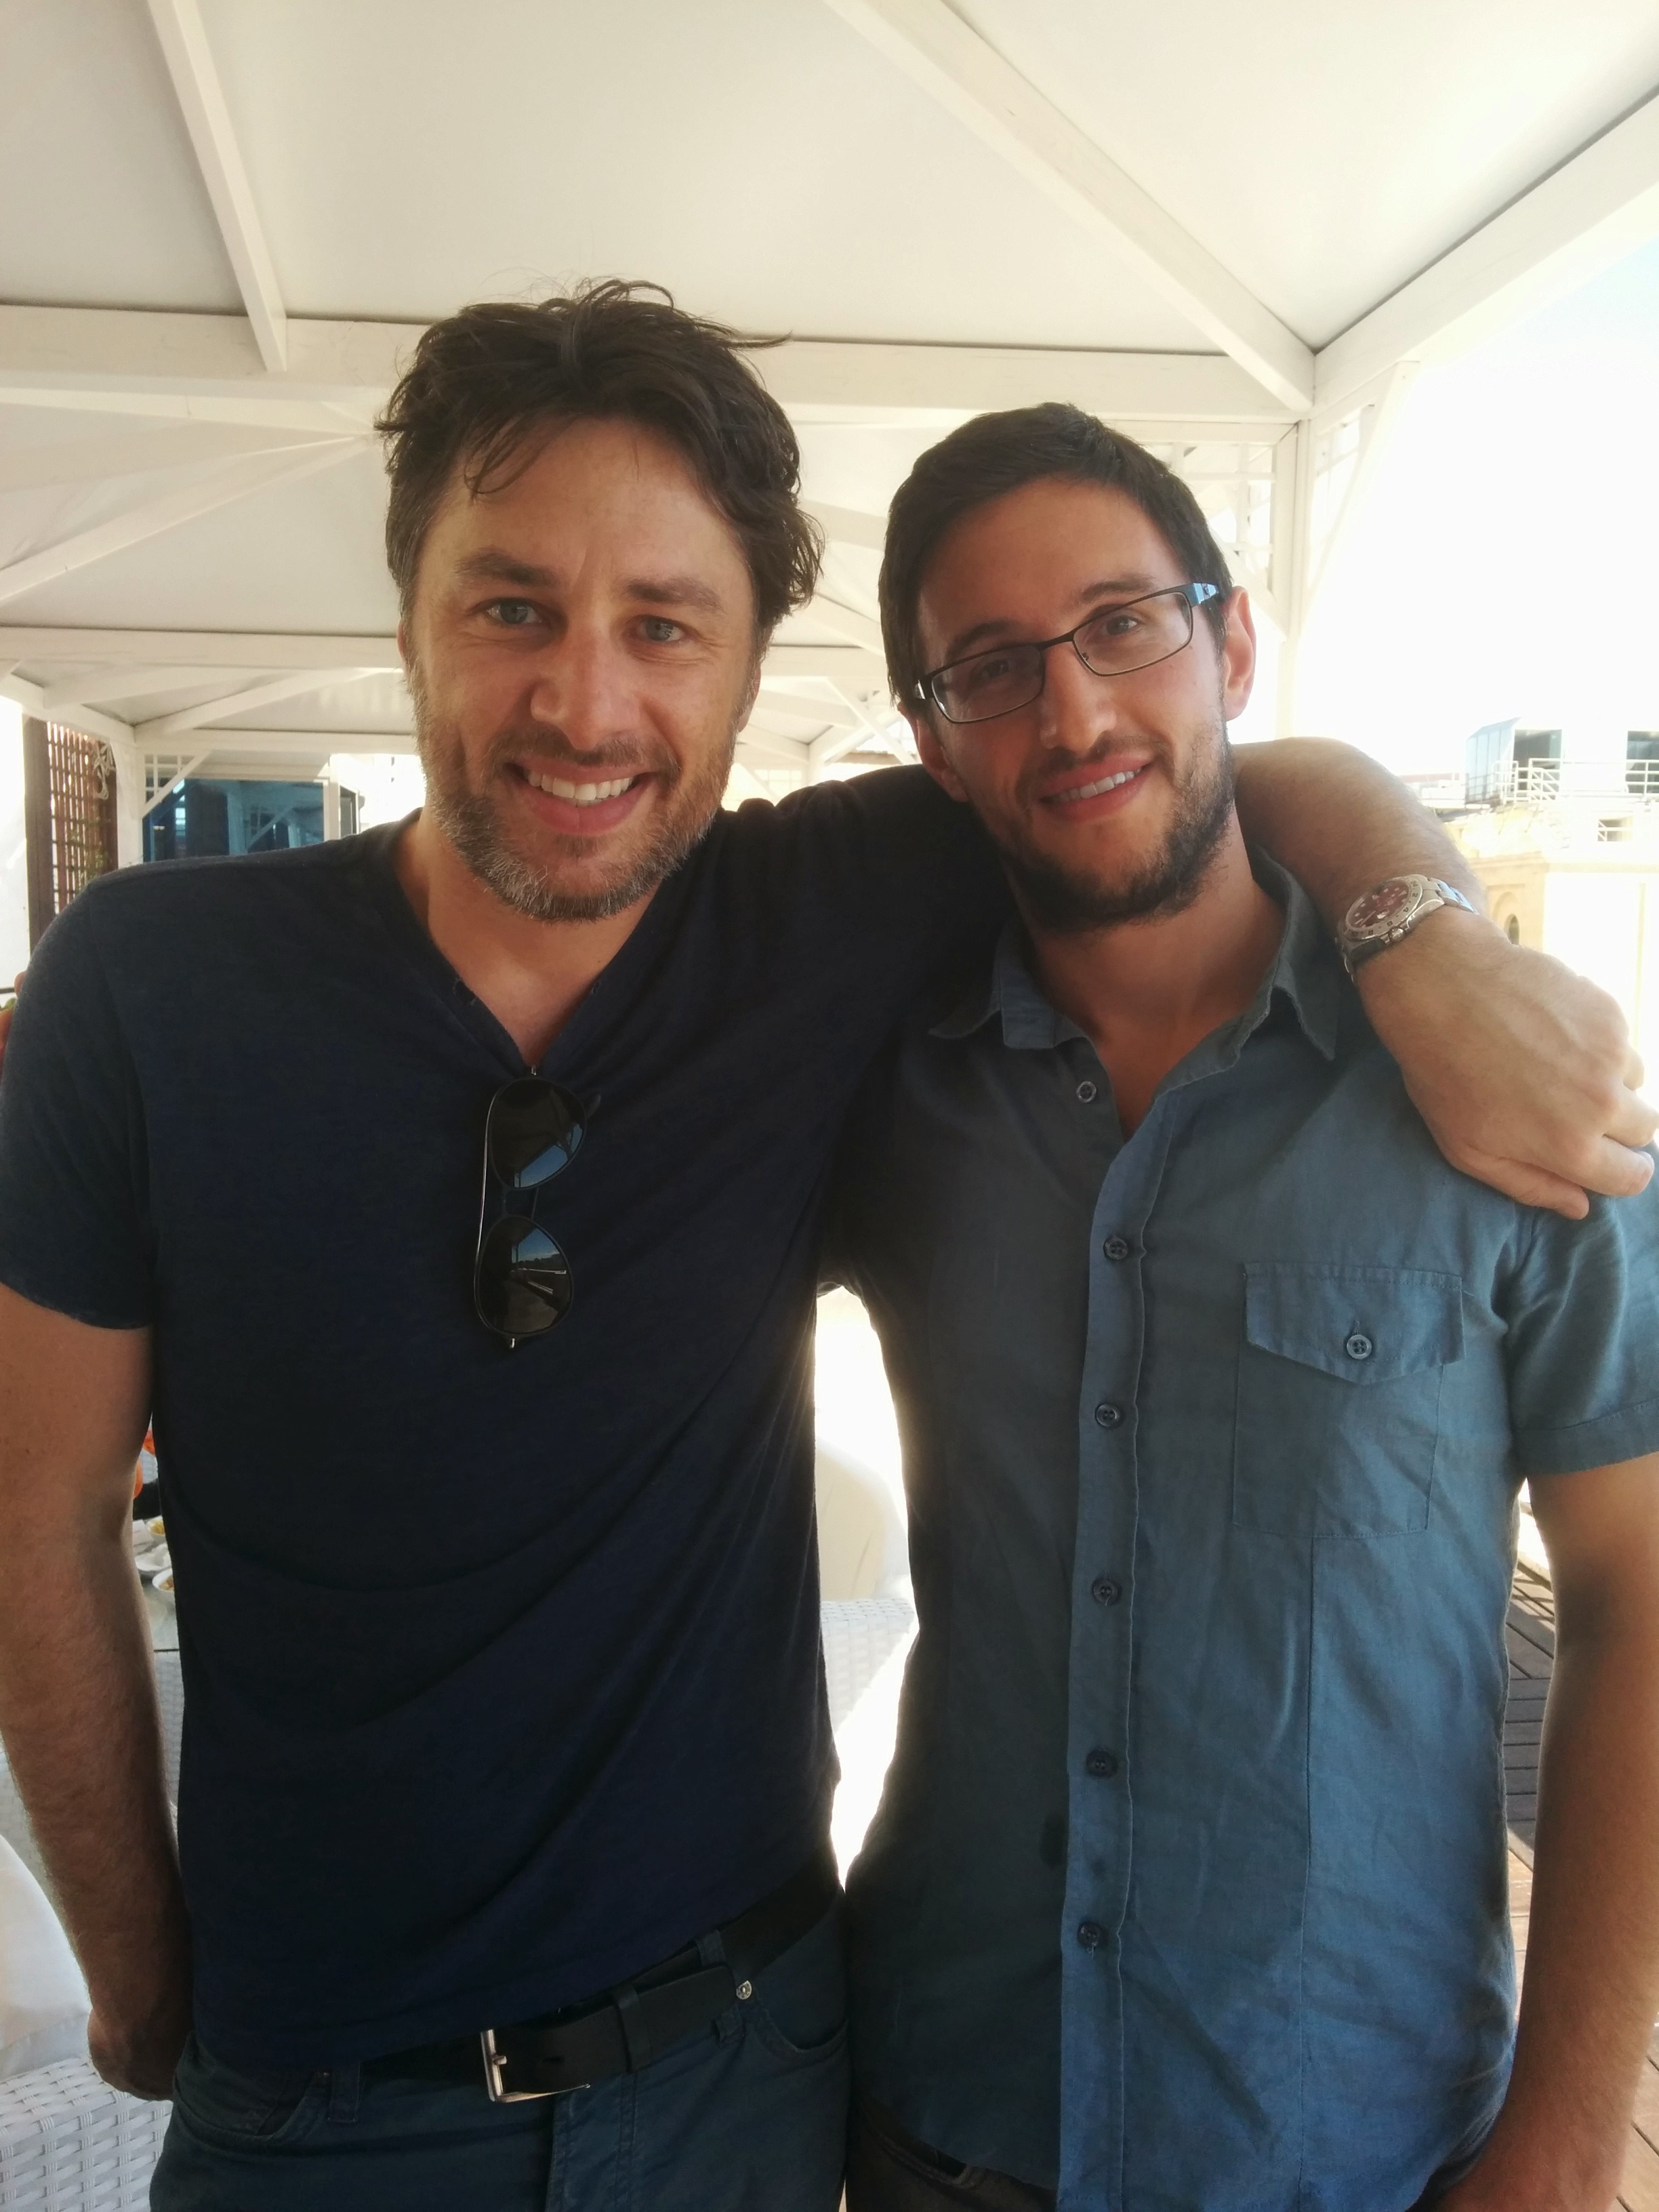 Zach Braff and Daniele Isidori having drinks before the Italy premiere of Wish I Was Here